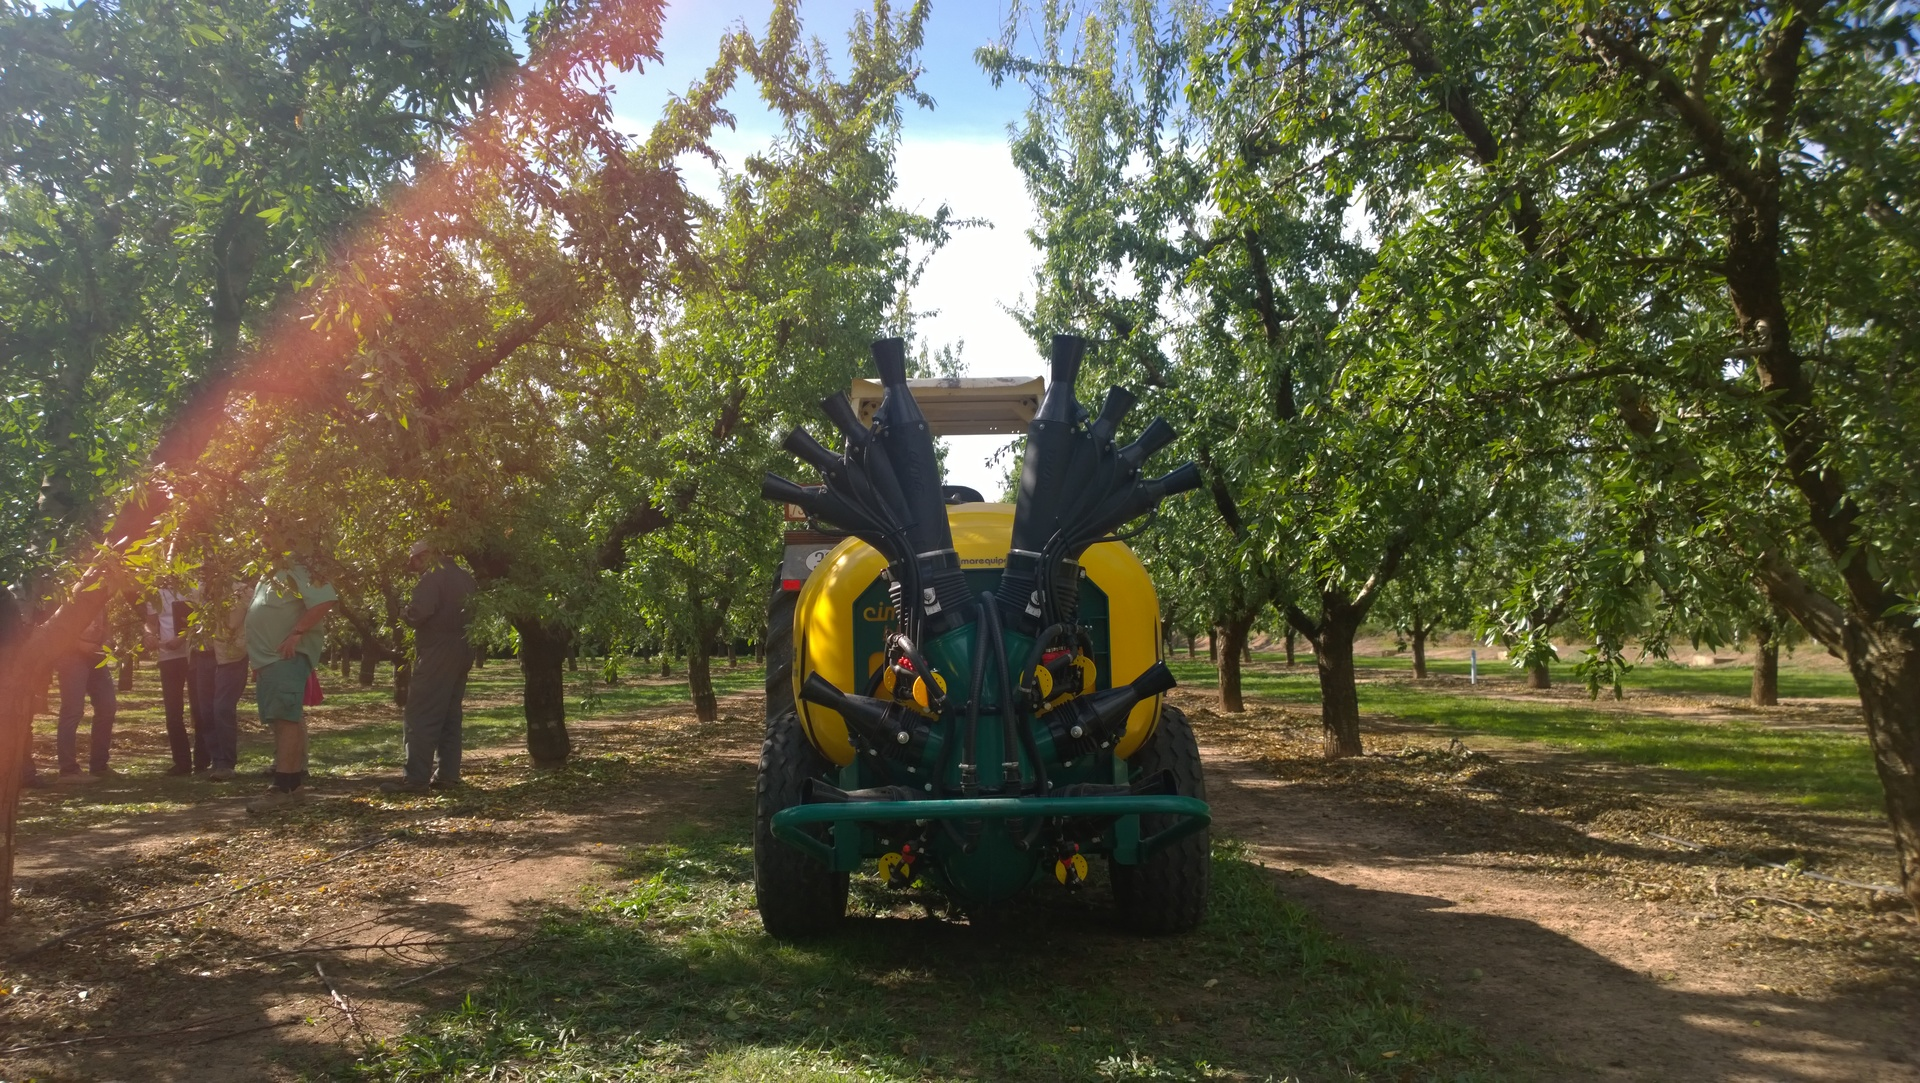 4 lower cannons and upper double Olive sprayhead  – almond trees